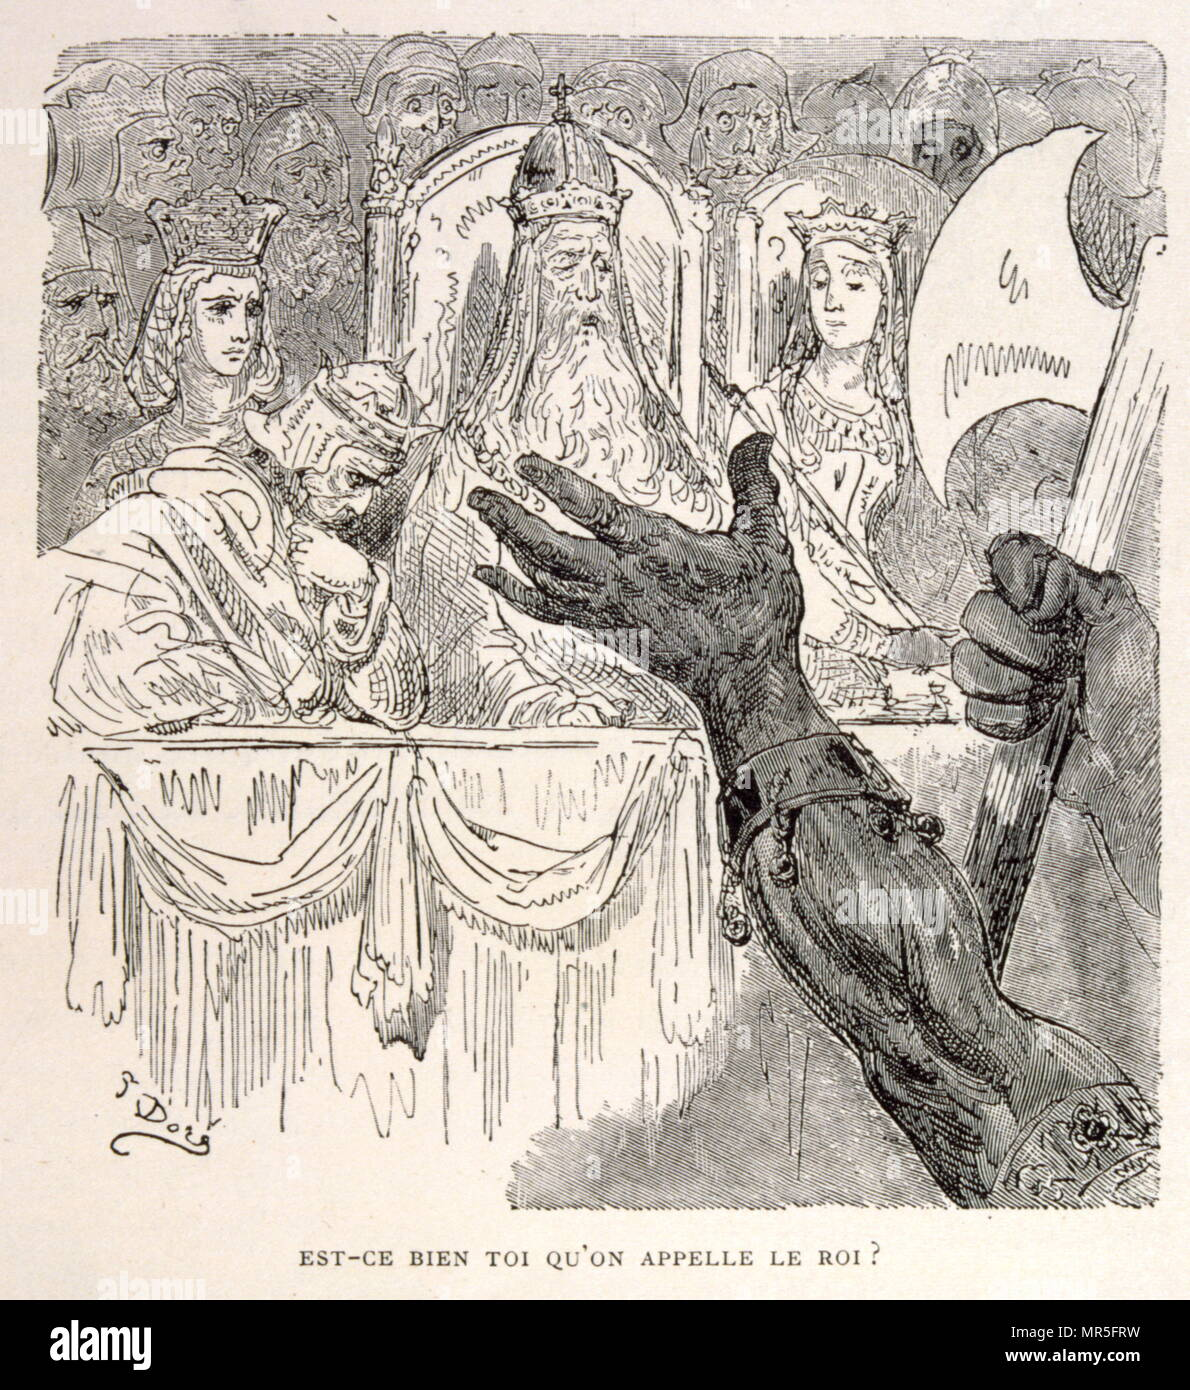 Illustration of an appeal to the King, from La legende de Croque-Mitaine; (1863); Drawn by Gustave Dore 1832-1883. The French equivalent of the Bogeyman is le Croque-Mitaine ('the mitten-biter' or rather 'the hand-cruncher'. A Bogeyman is a common allusion to a mythical creature in many cultures used by adults to frighten children into good behaviour. - Stock Image